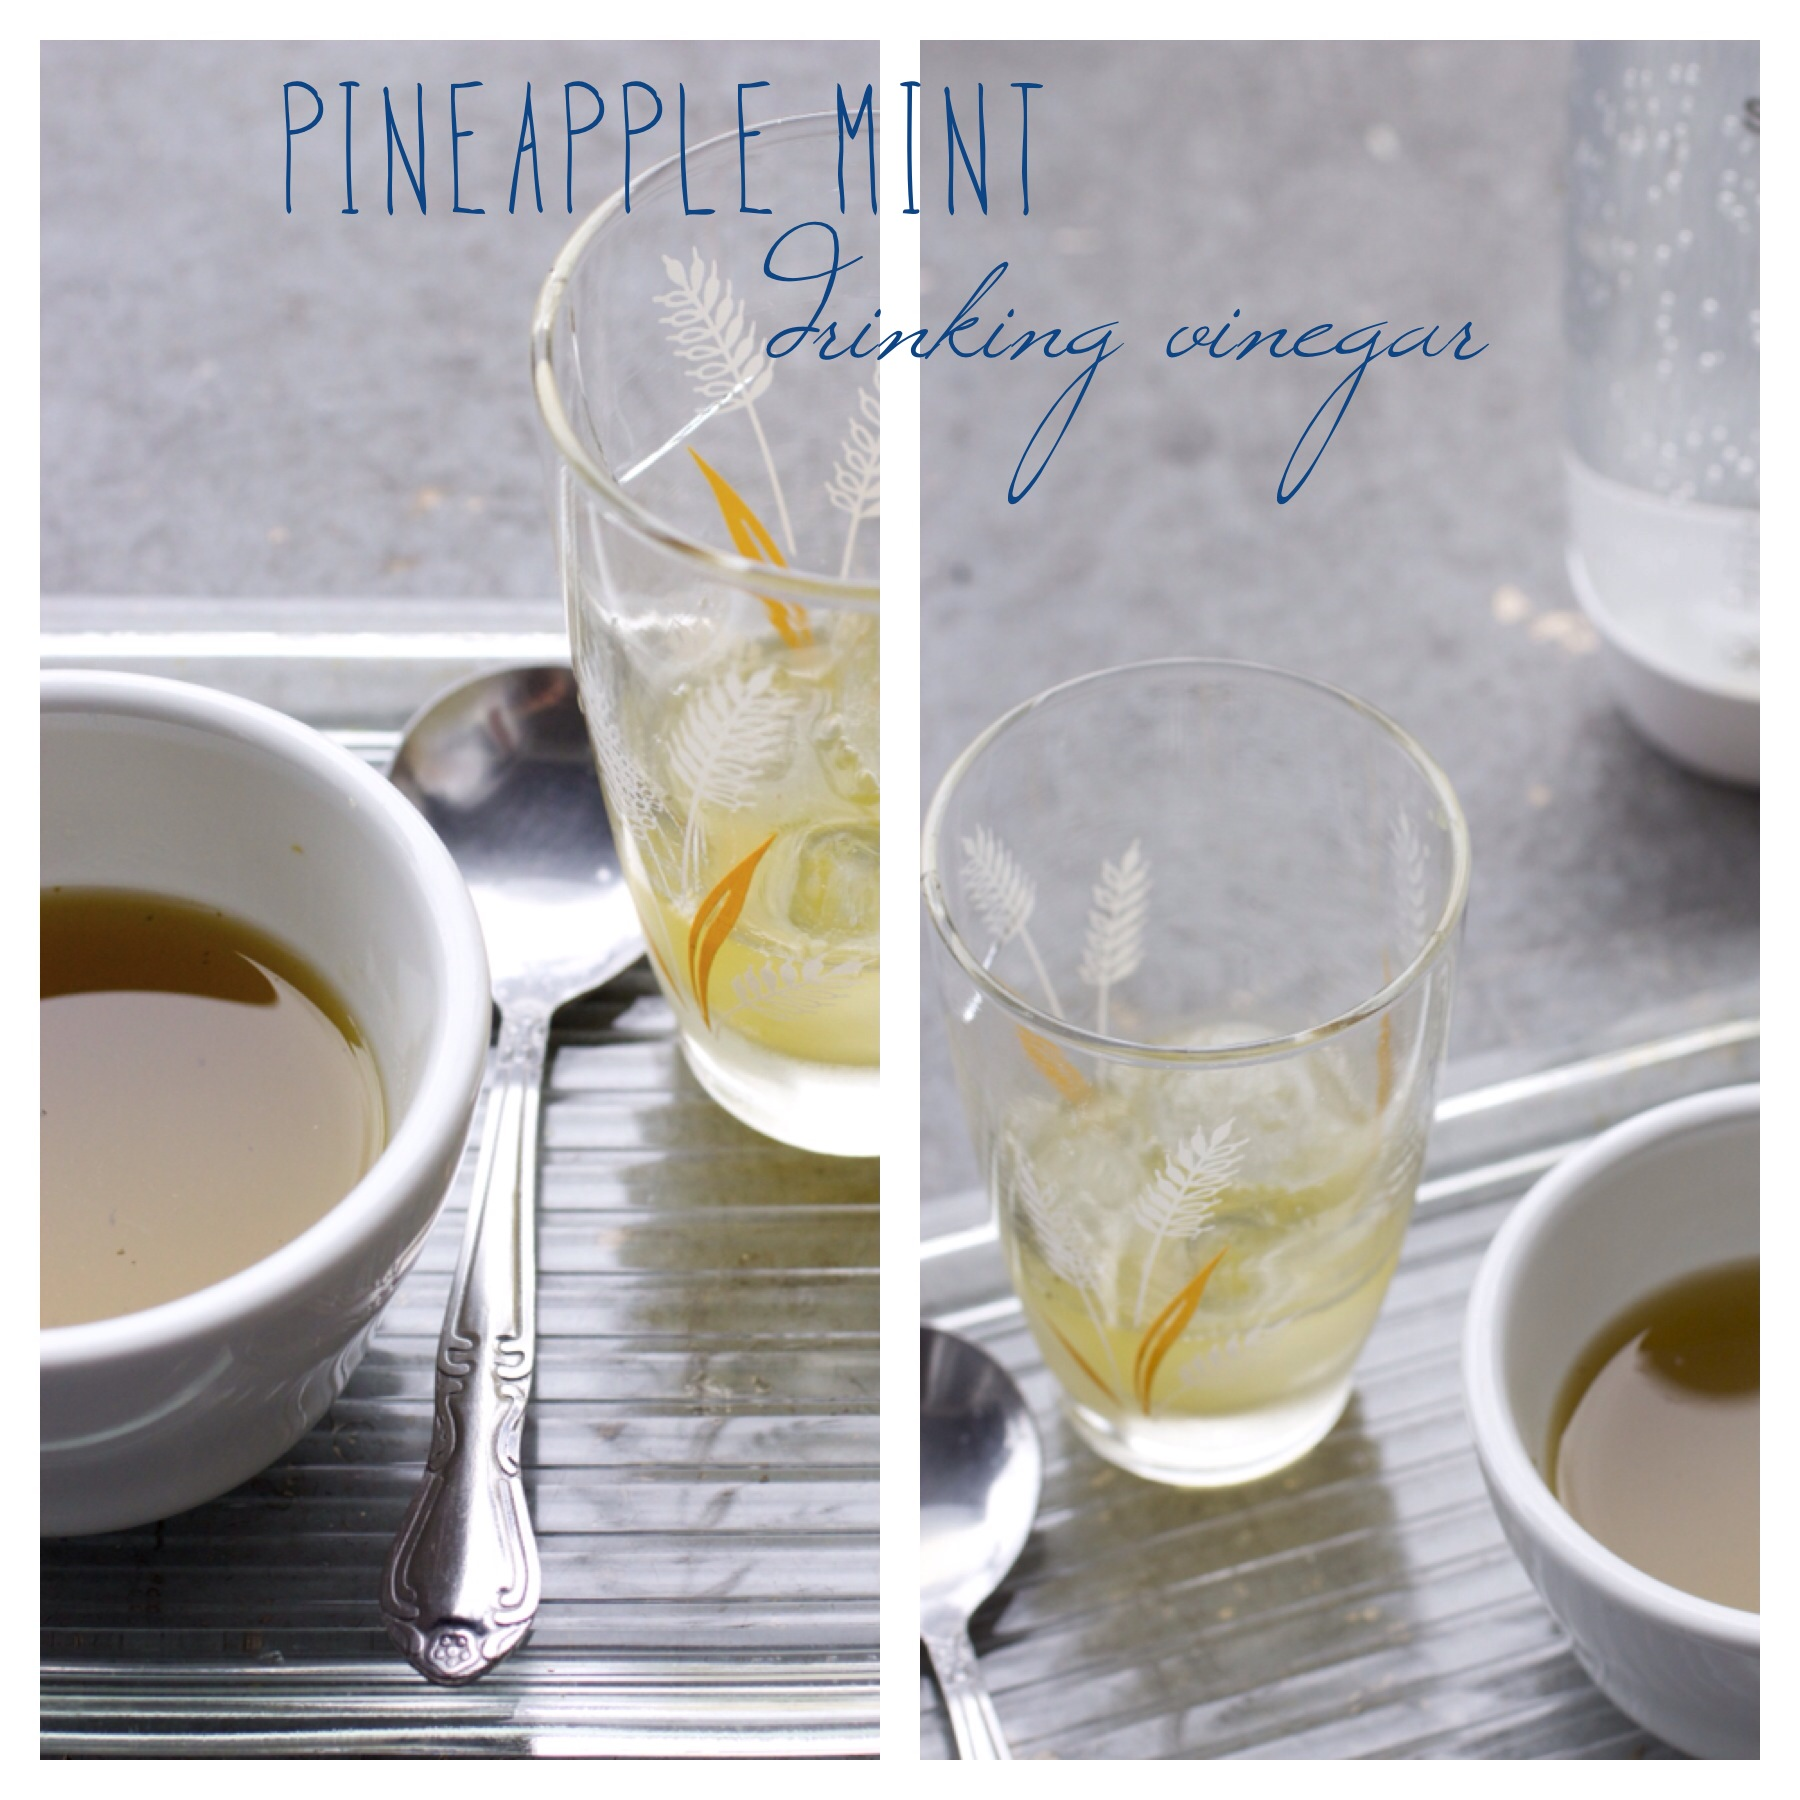 Pineapple Mint Drinking Vinegar